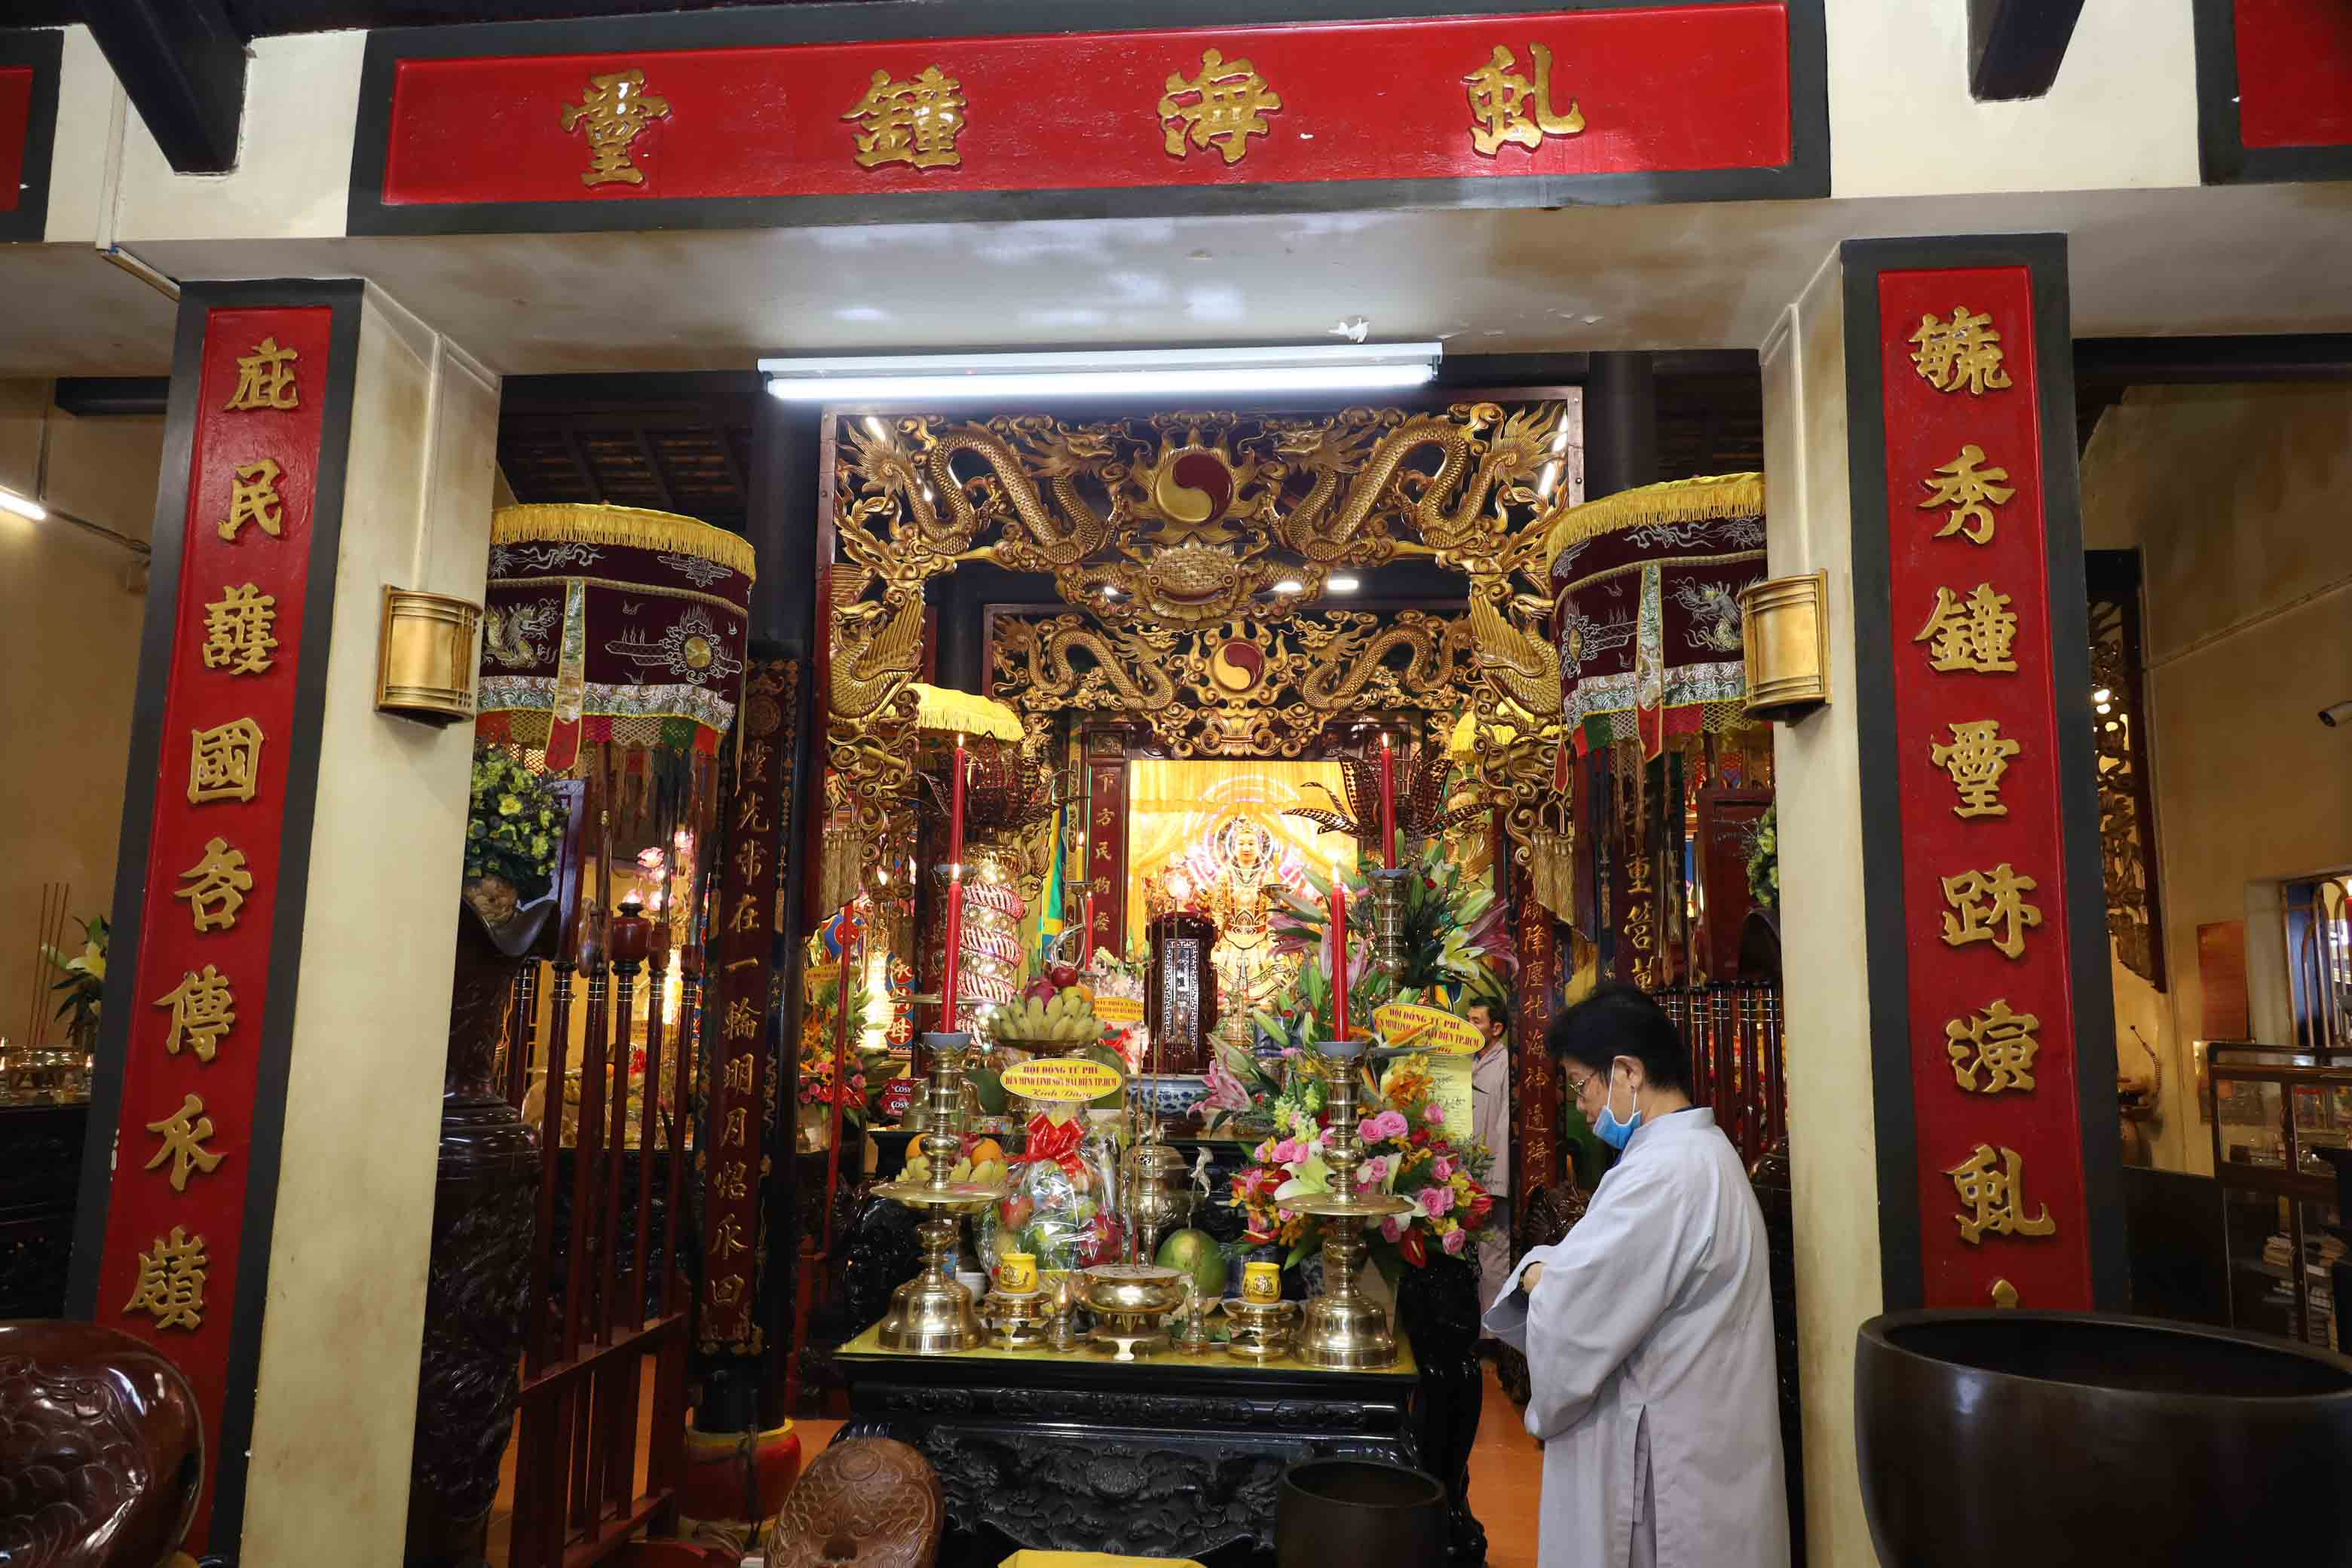 Inside Thien Y Ana Holy Mother worshipping temple